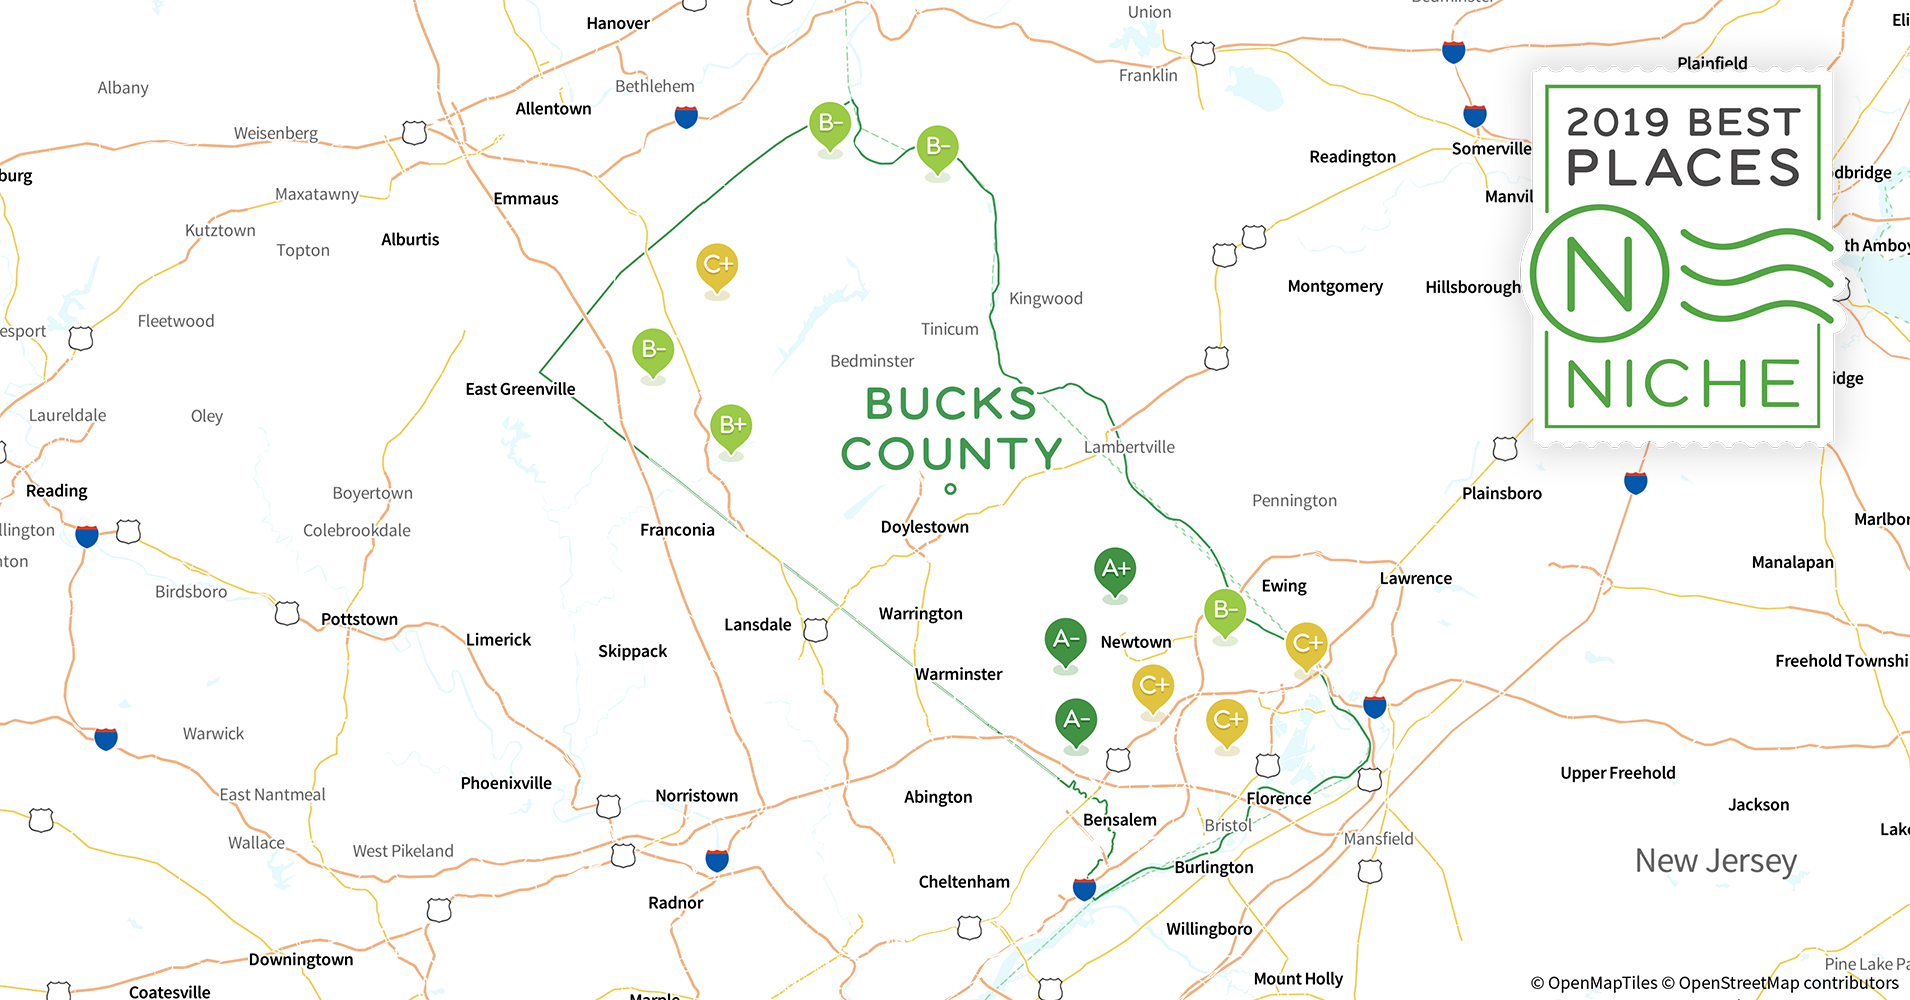 2019 Safe Places to Live in Bucks County, PA - Niche Zip Codes Map Of Philadelphia Bucks on map of delaware and philadelphia, map of delaware pa and nj, map of philadelphia street, map of philadelphia county, map of philadelphia congressional districts, map of philadelphia city, ponte vedra zip code, map of philadelphia area, map of philadelphia school district, map of philadelphia neighborhood, map of philadelphia state,